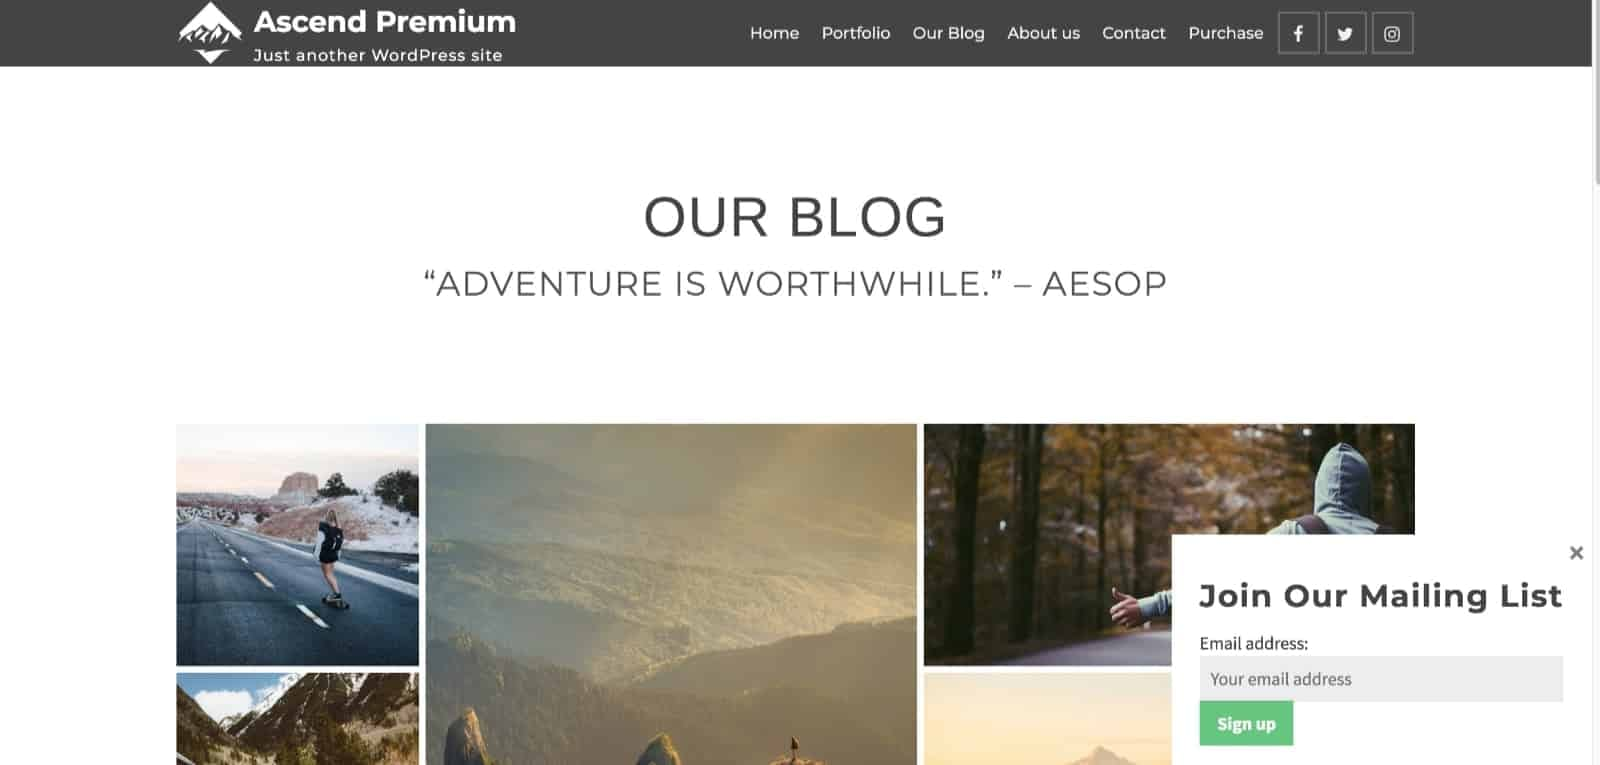 mailchimp-for-wordpress-form-in-popup-kadence-themes